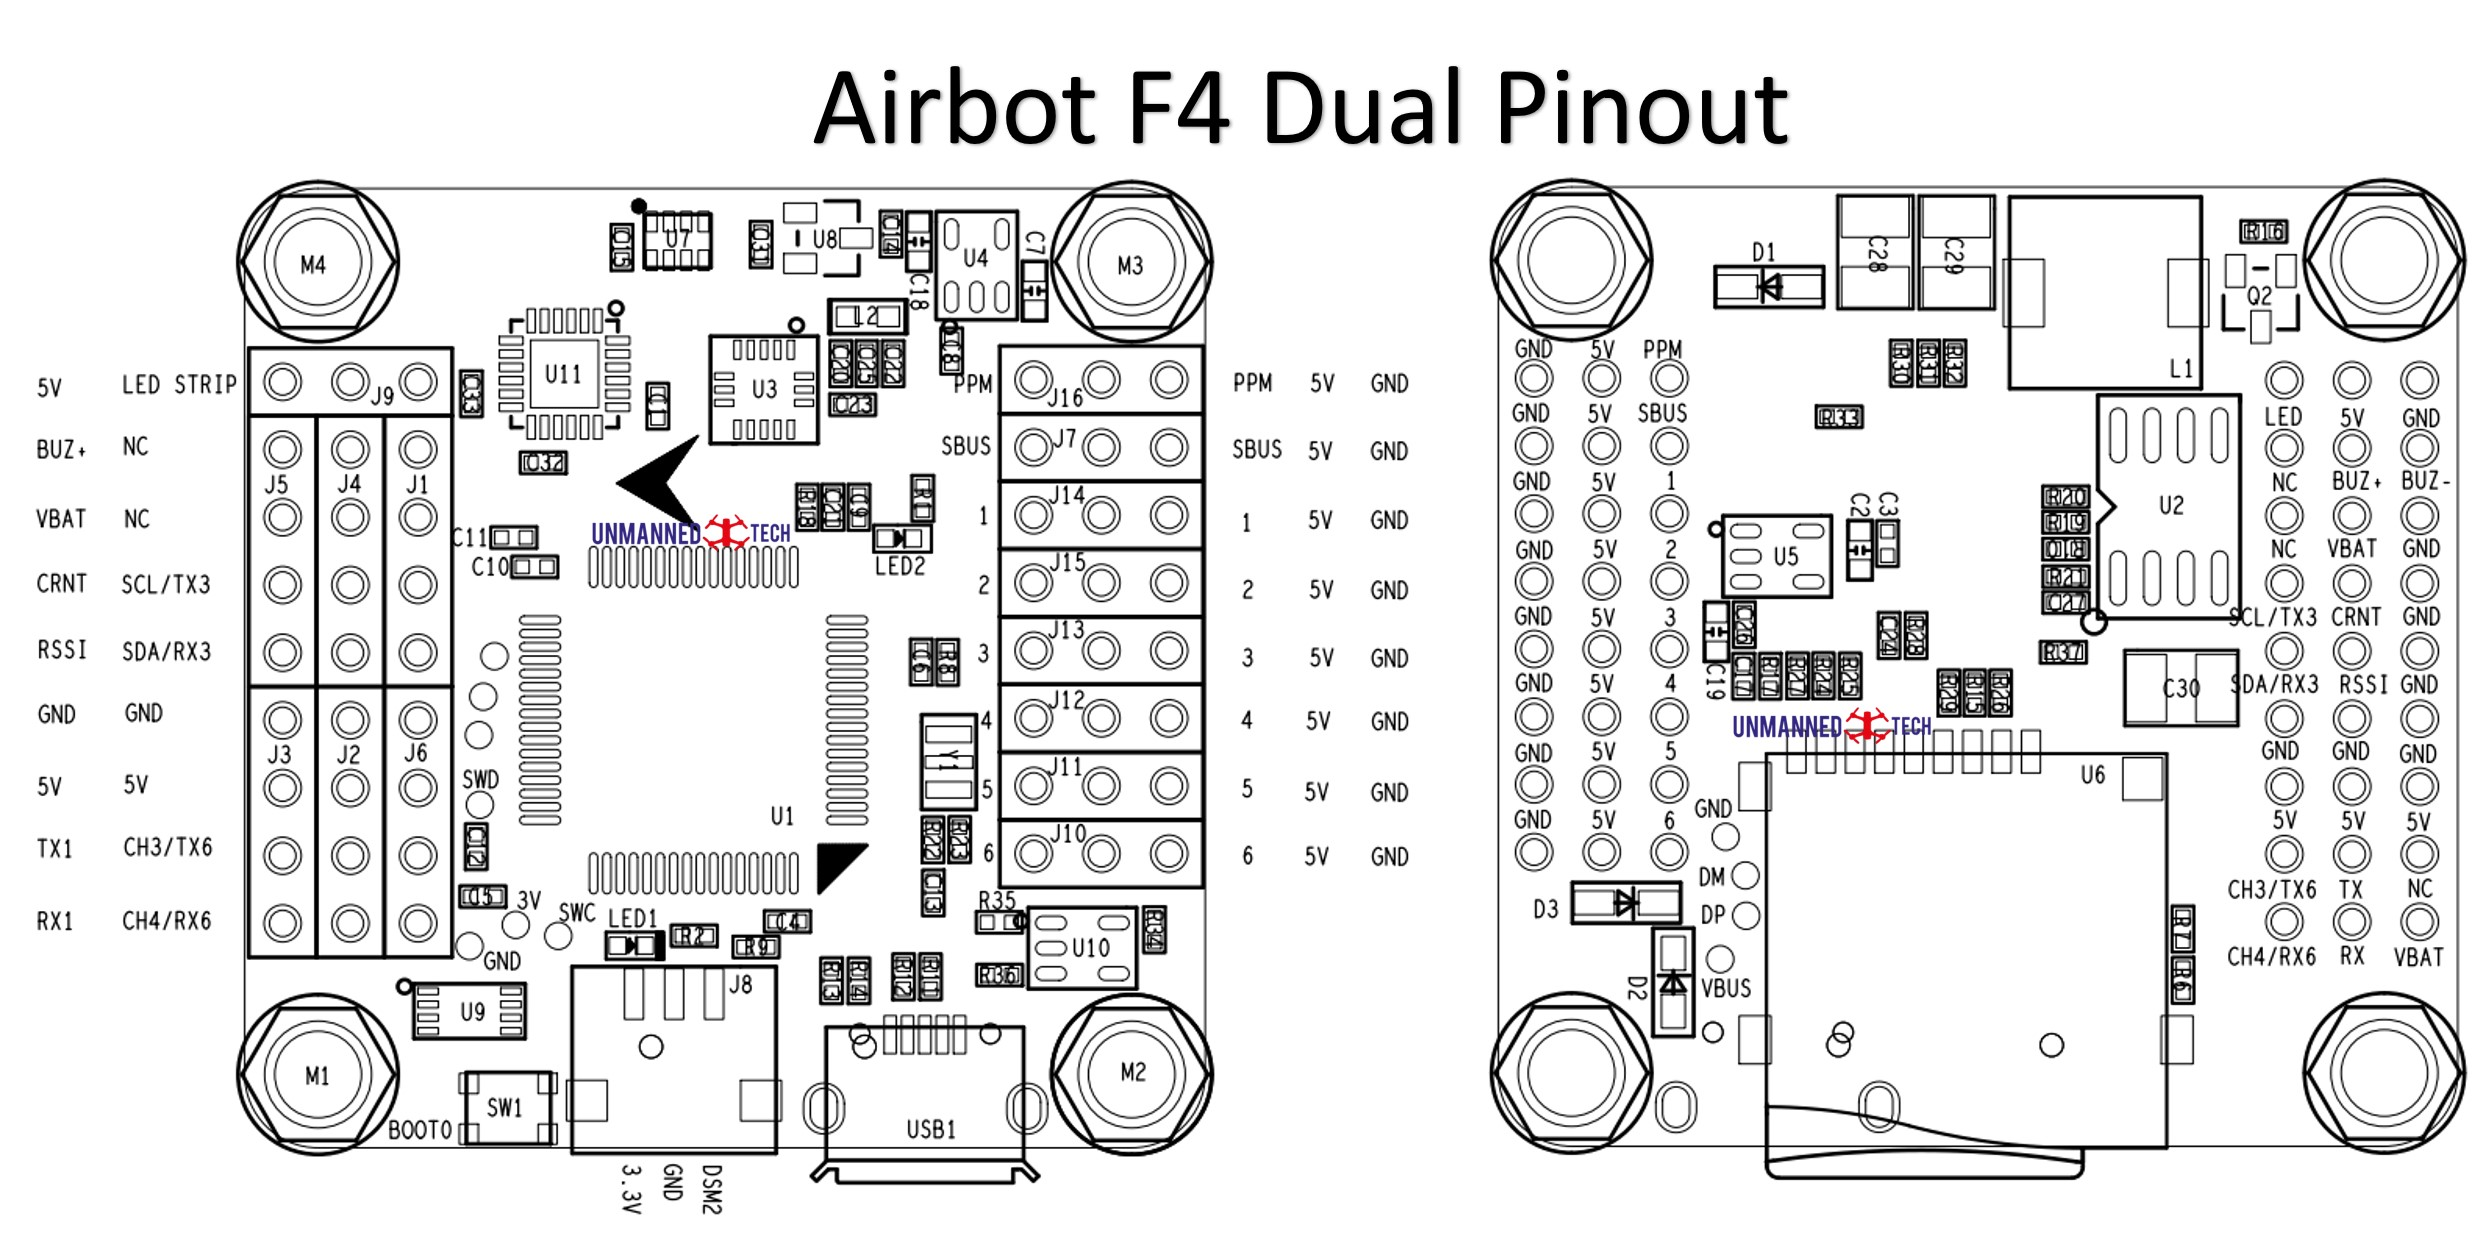 Airbot F4 Inav Hardware Issue